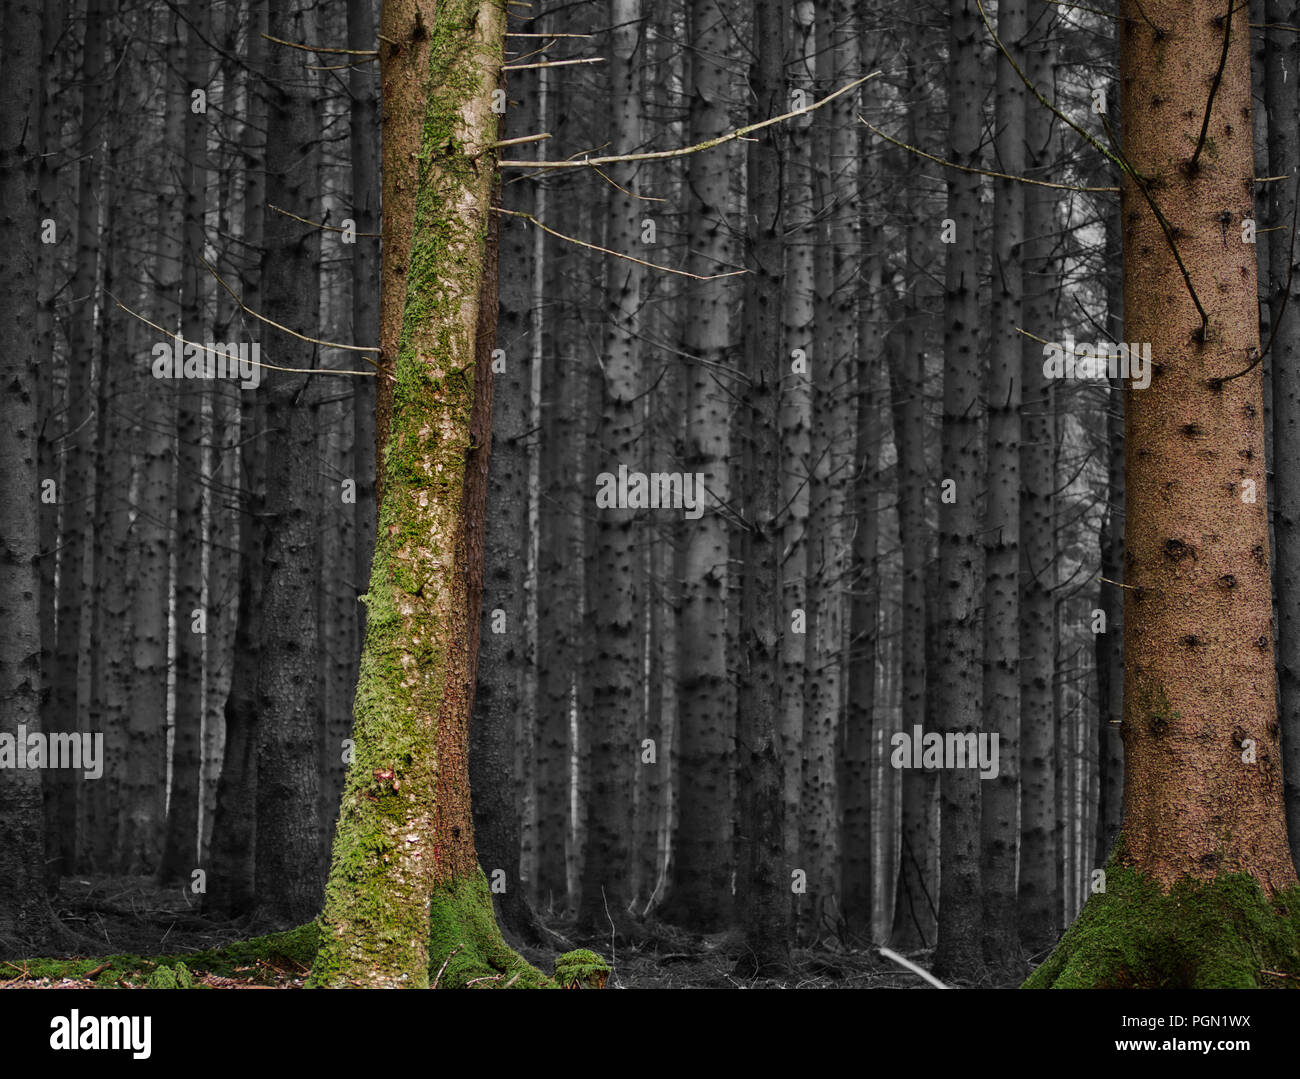 Play of colors from a forest shot with colorful trees in the foreground and black and white spruces in the background - Stock Image